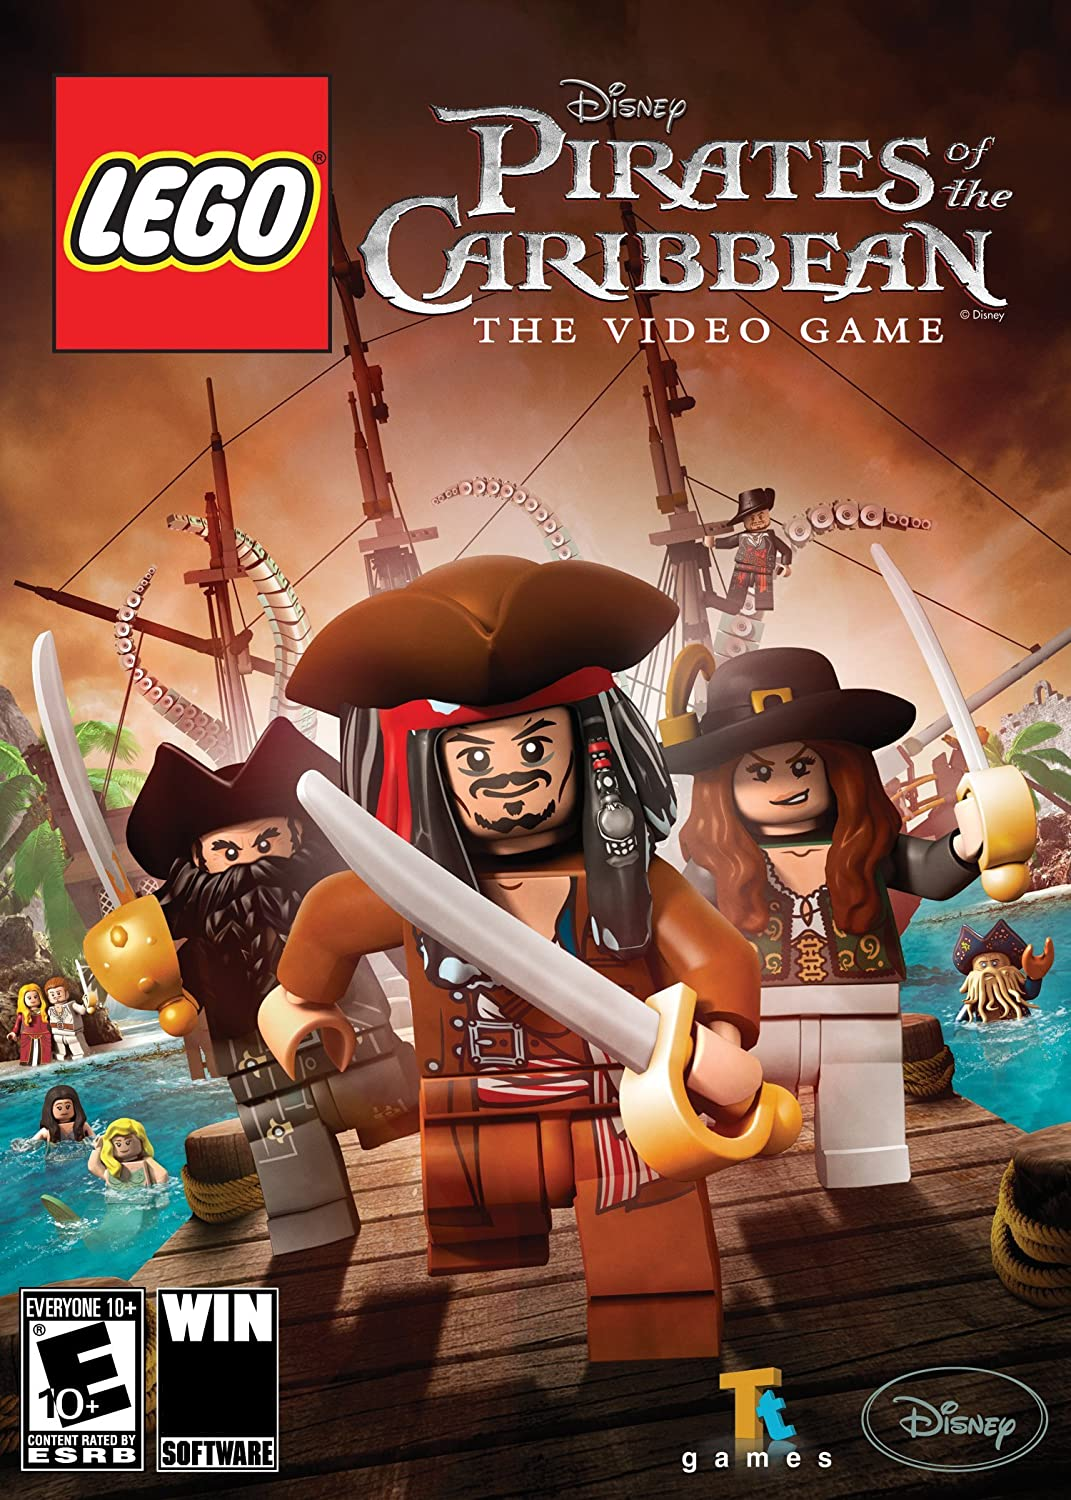 pirates of the caribbean downloads